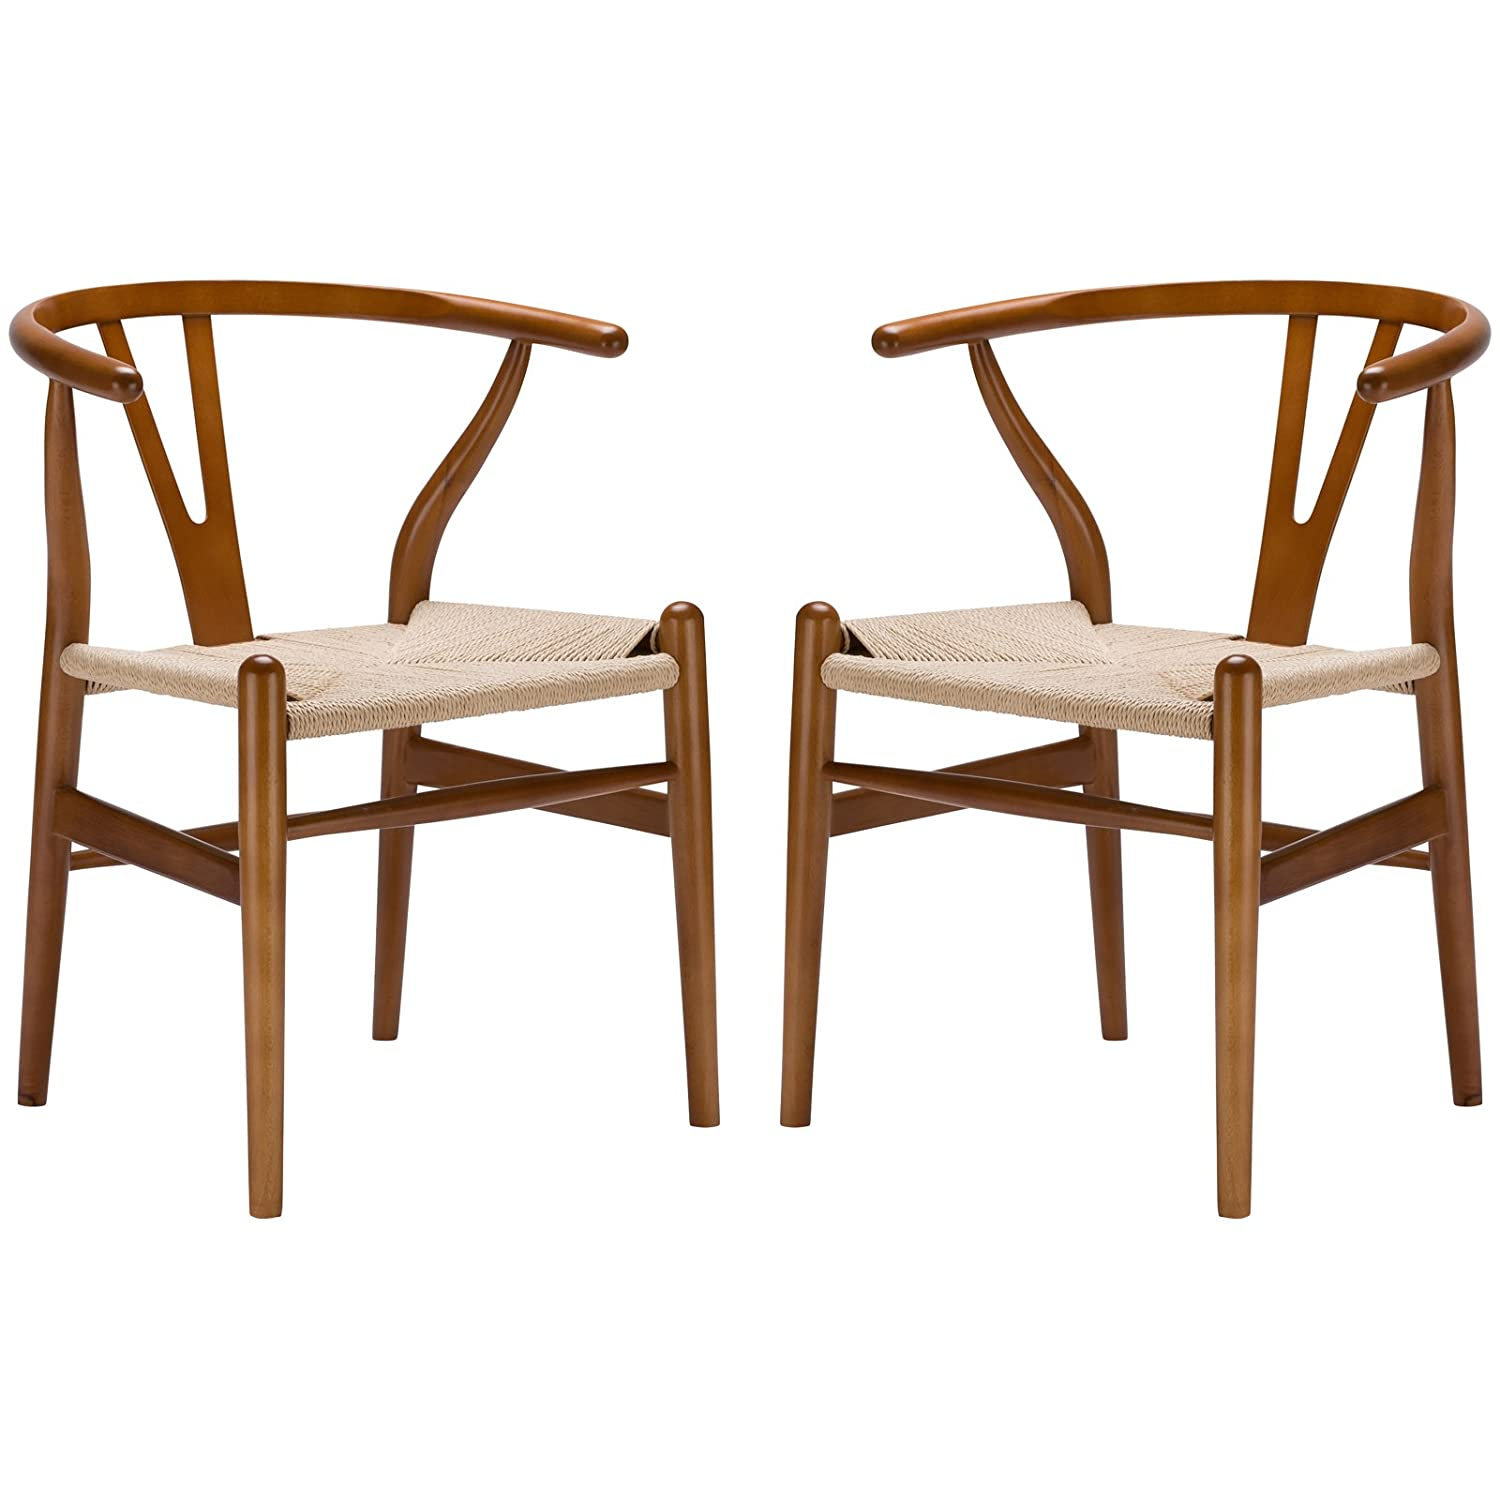 100 wishbone chair knock off 59 best eat replica images on pinterest chairs armchair and - Wishbone chair knock off ...